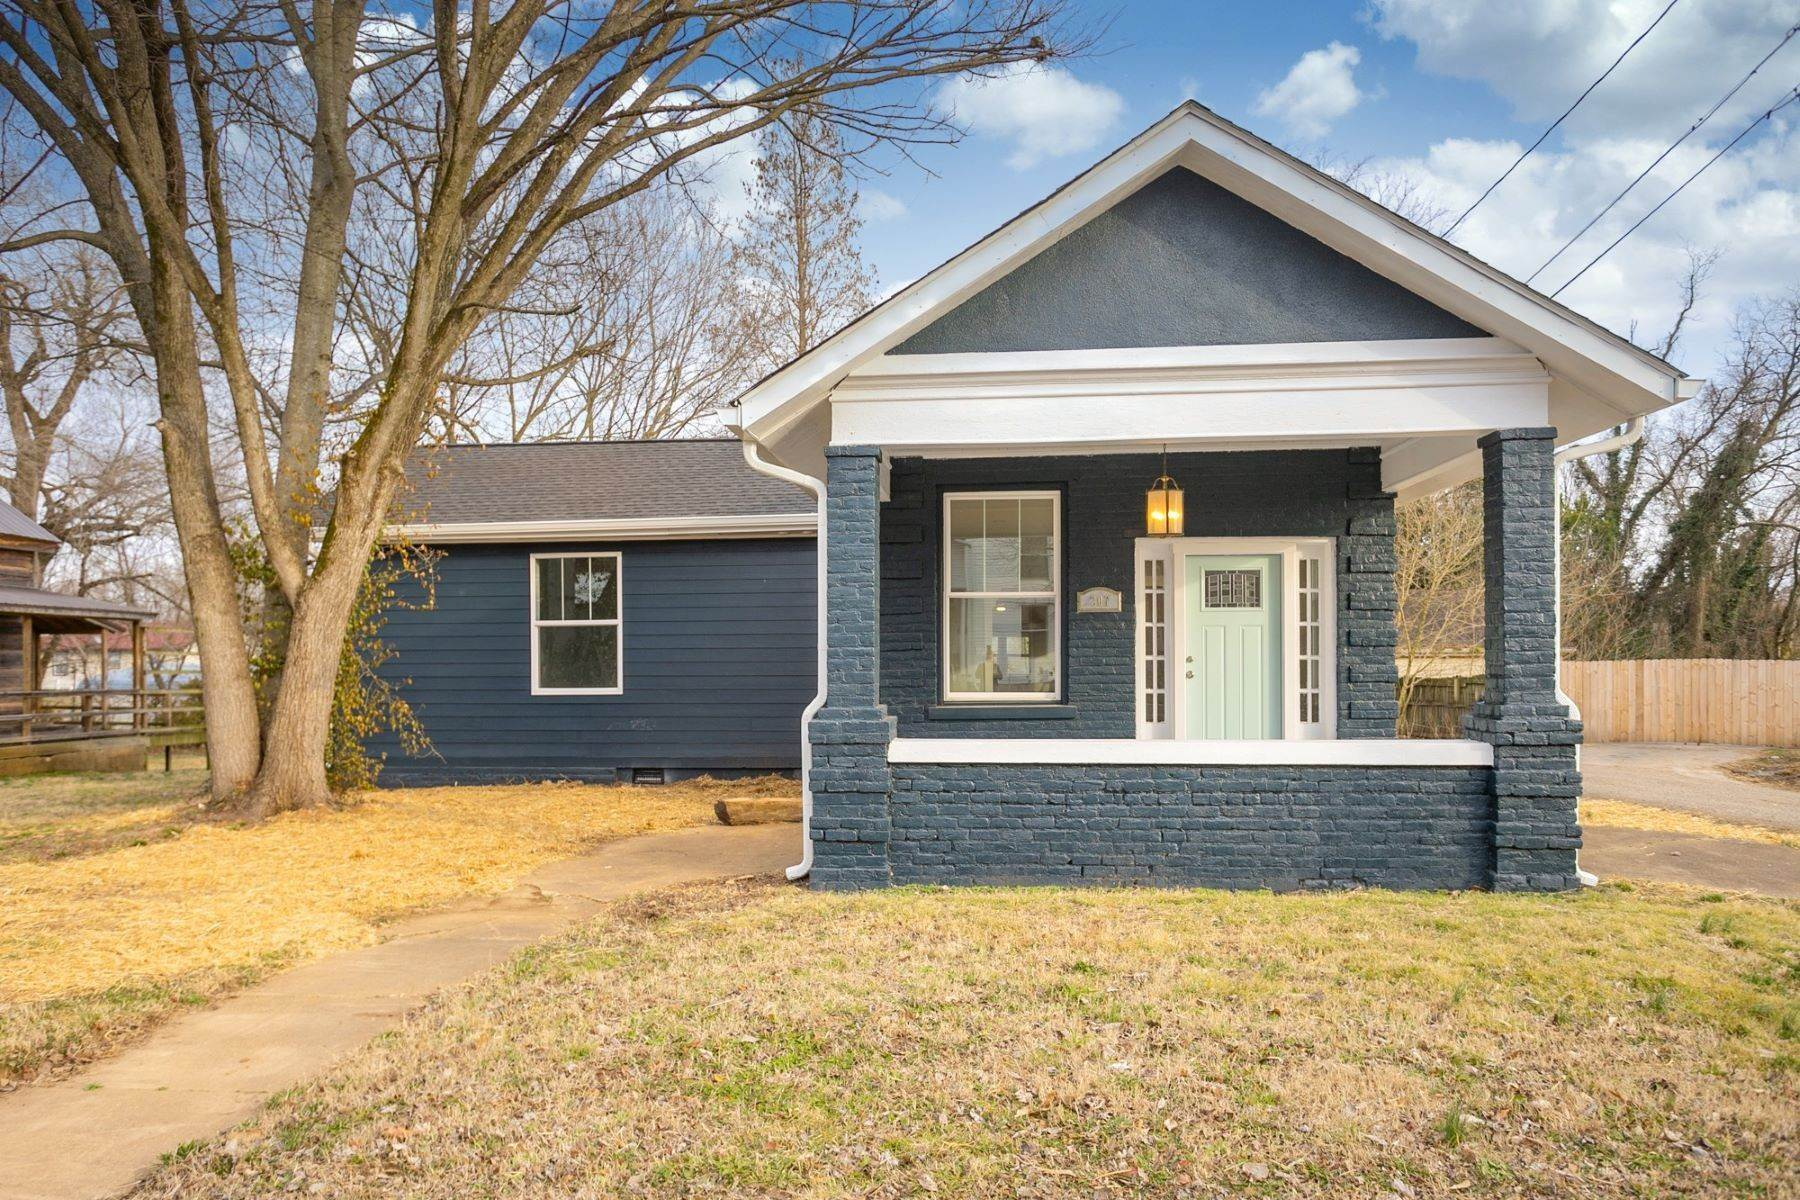 17. Single Family Homes for Sale at 207 South Main St, Mount Pleasant, Tn, 38474 207 South Main St Mount Pleasant, Tennessee 38474 United States